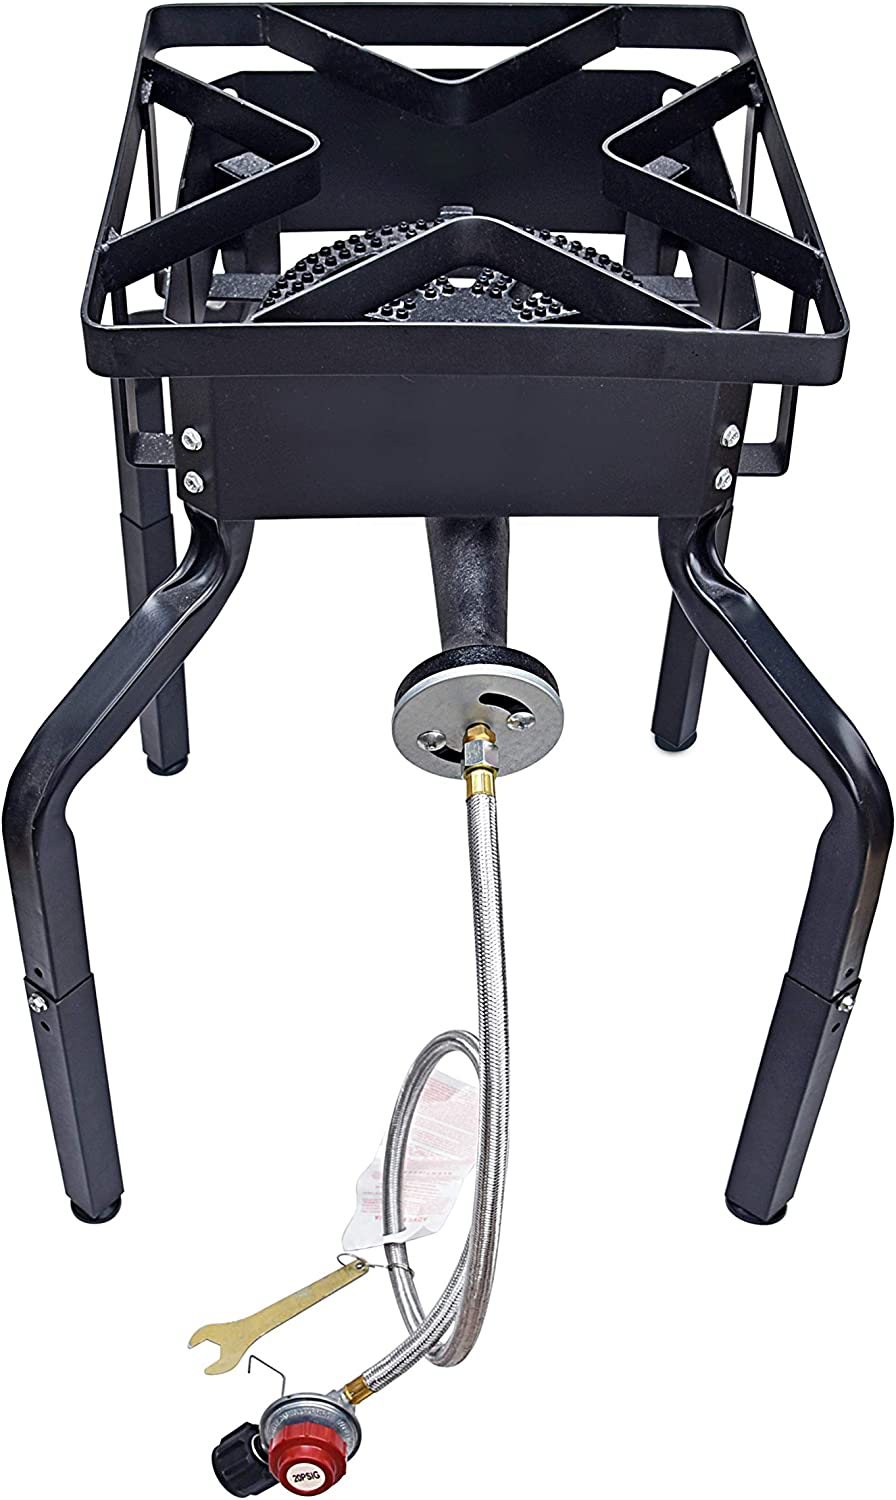 ARC USA, Outdoor Single Burner Stove with Adjustable Legs, High Pressure Propane Burner, Portable Gas Cooker, Camping Burner, Adjustable 0-20 PSI CSA Certified Regulator & Hose & Connector